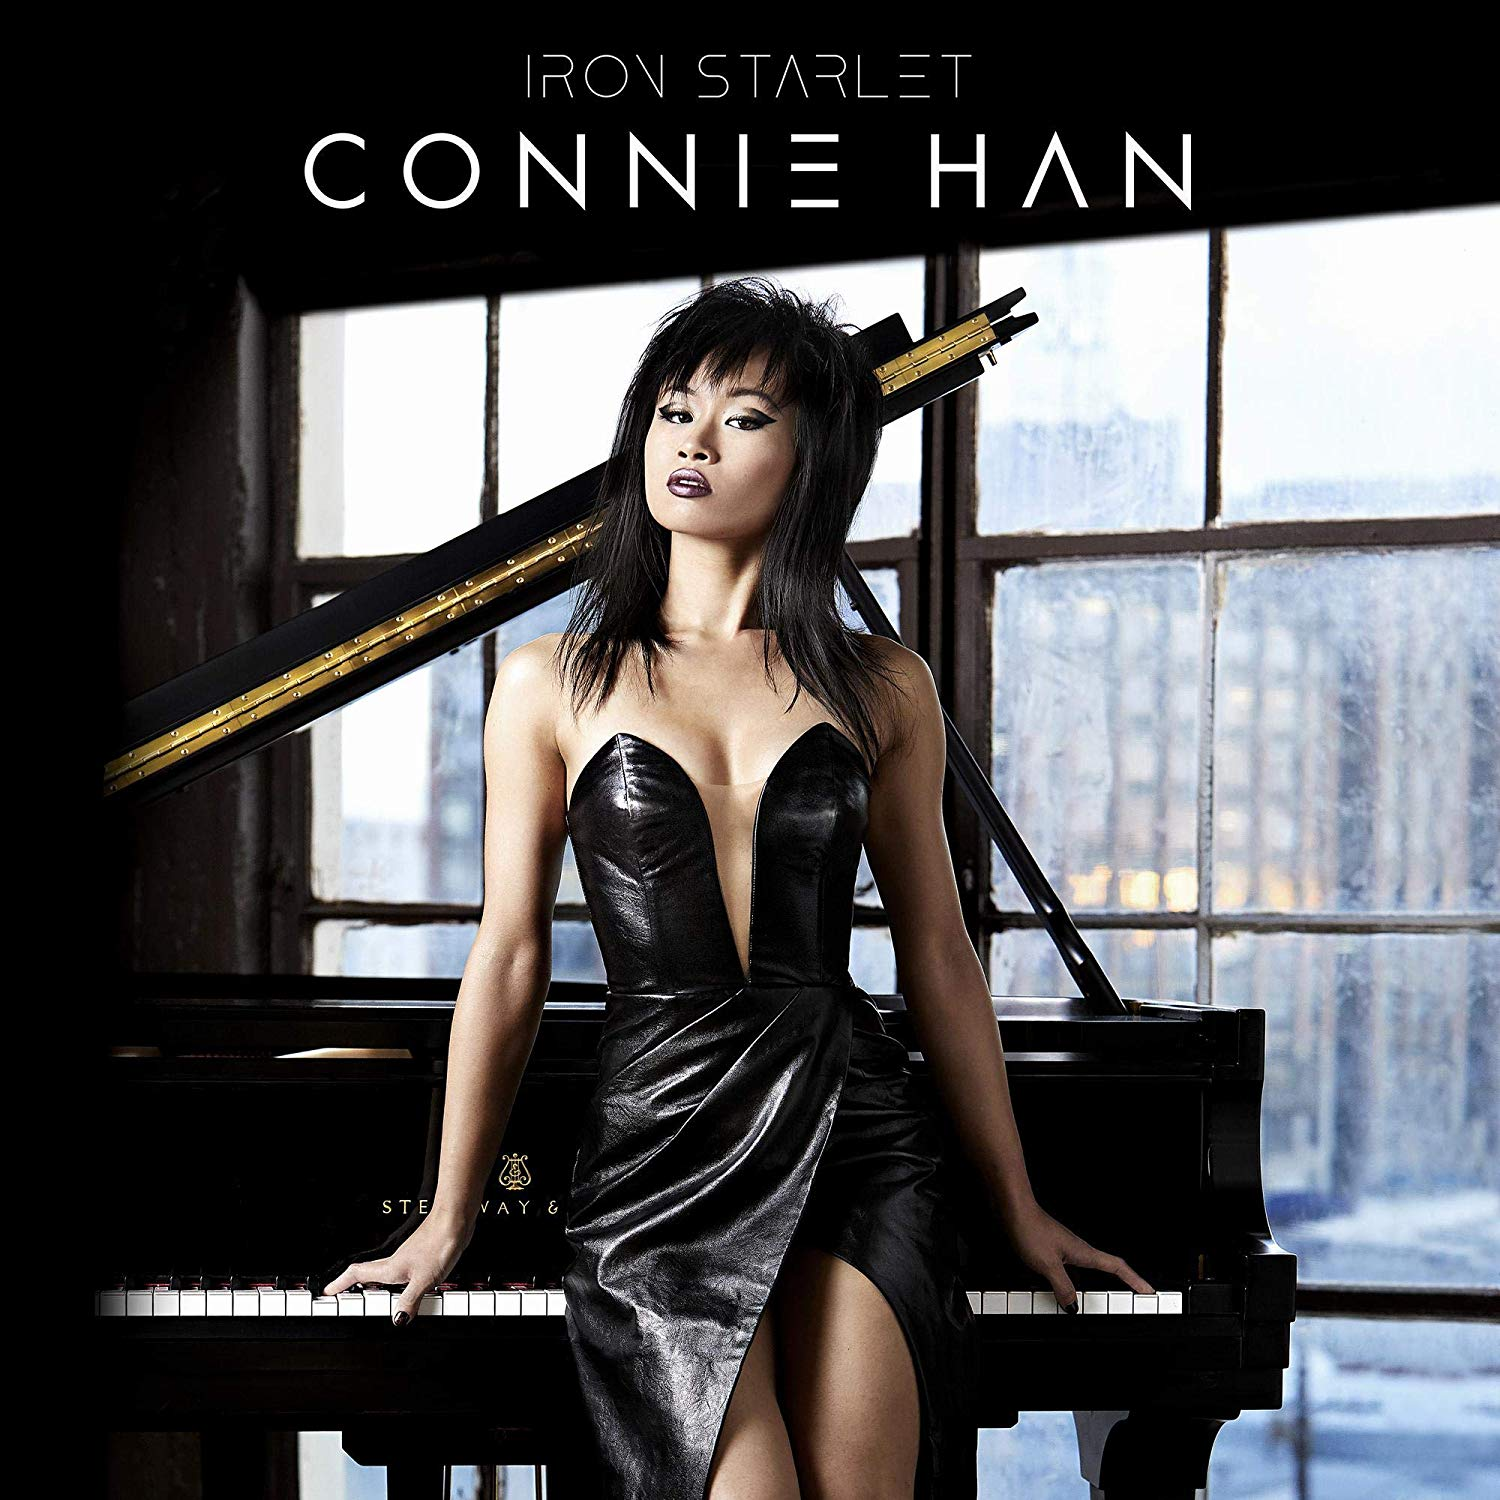 CONNIE HAN - Iron Starlet cover